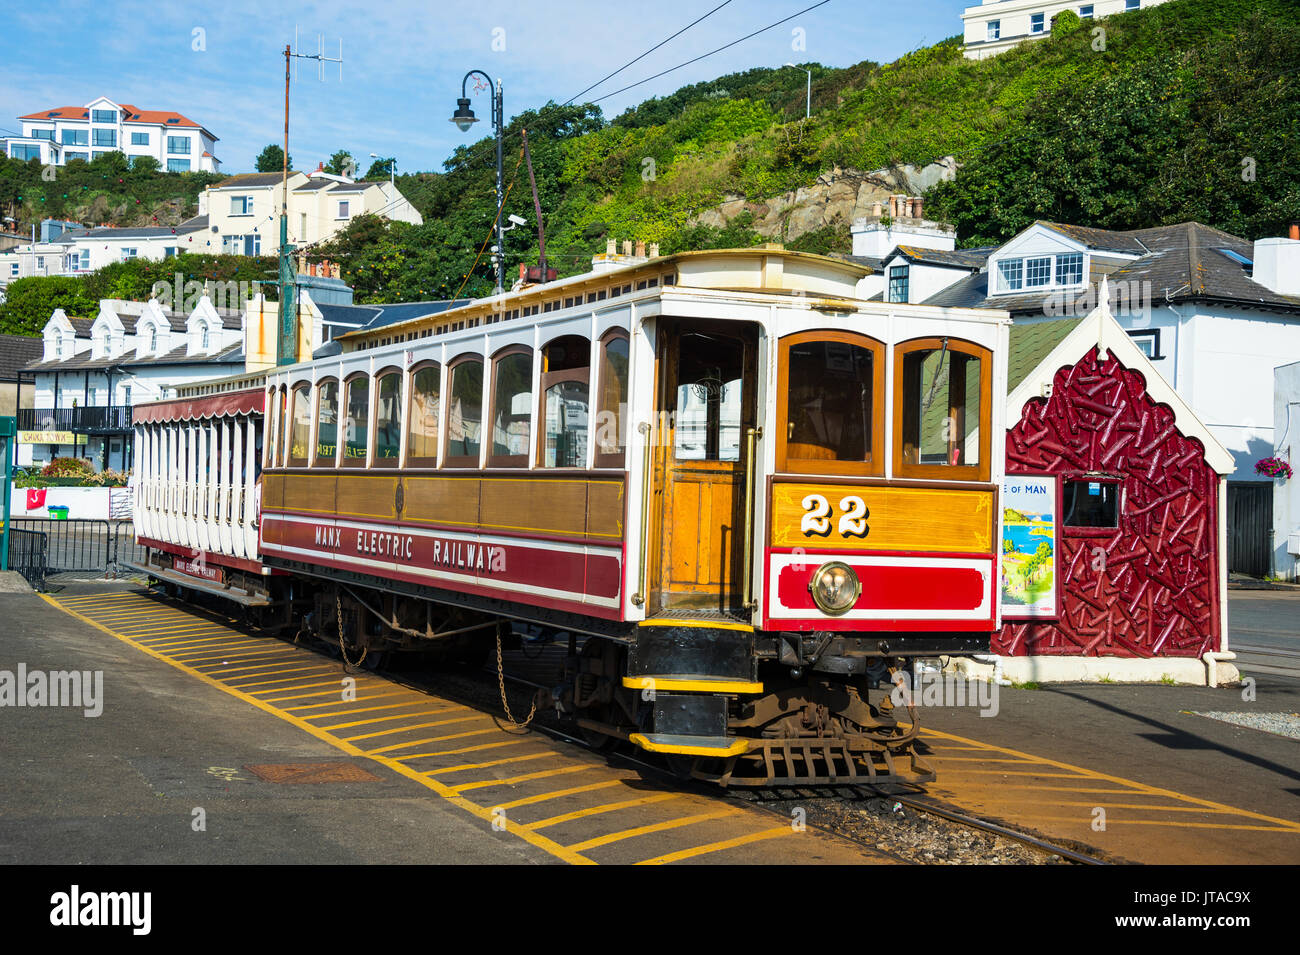 Old tram in Douglas, Isle of Man, crown dependency of the United Kingdom, Europe - Stock Image